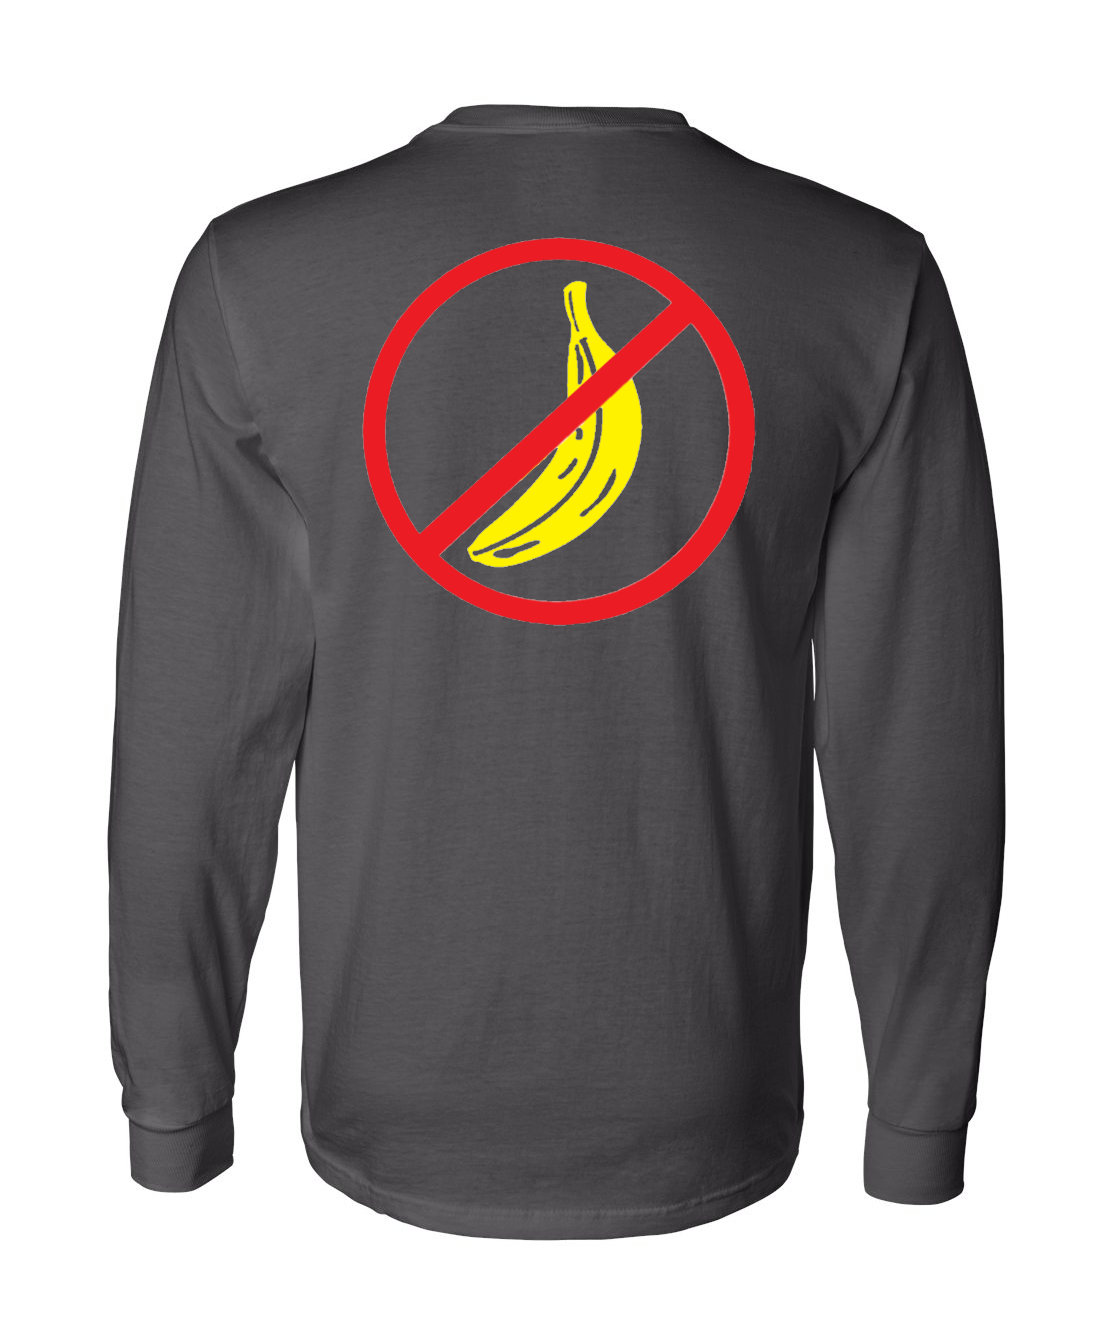 NO Bananas Cotton Long Sleeve